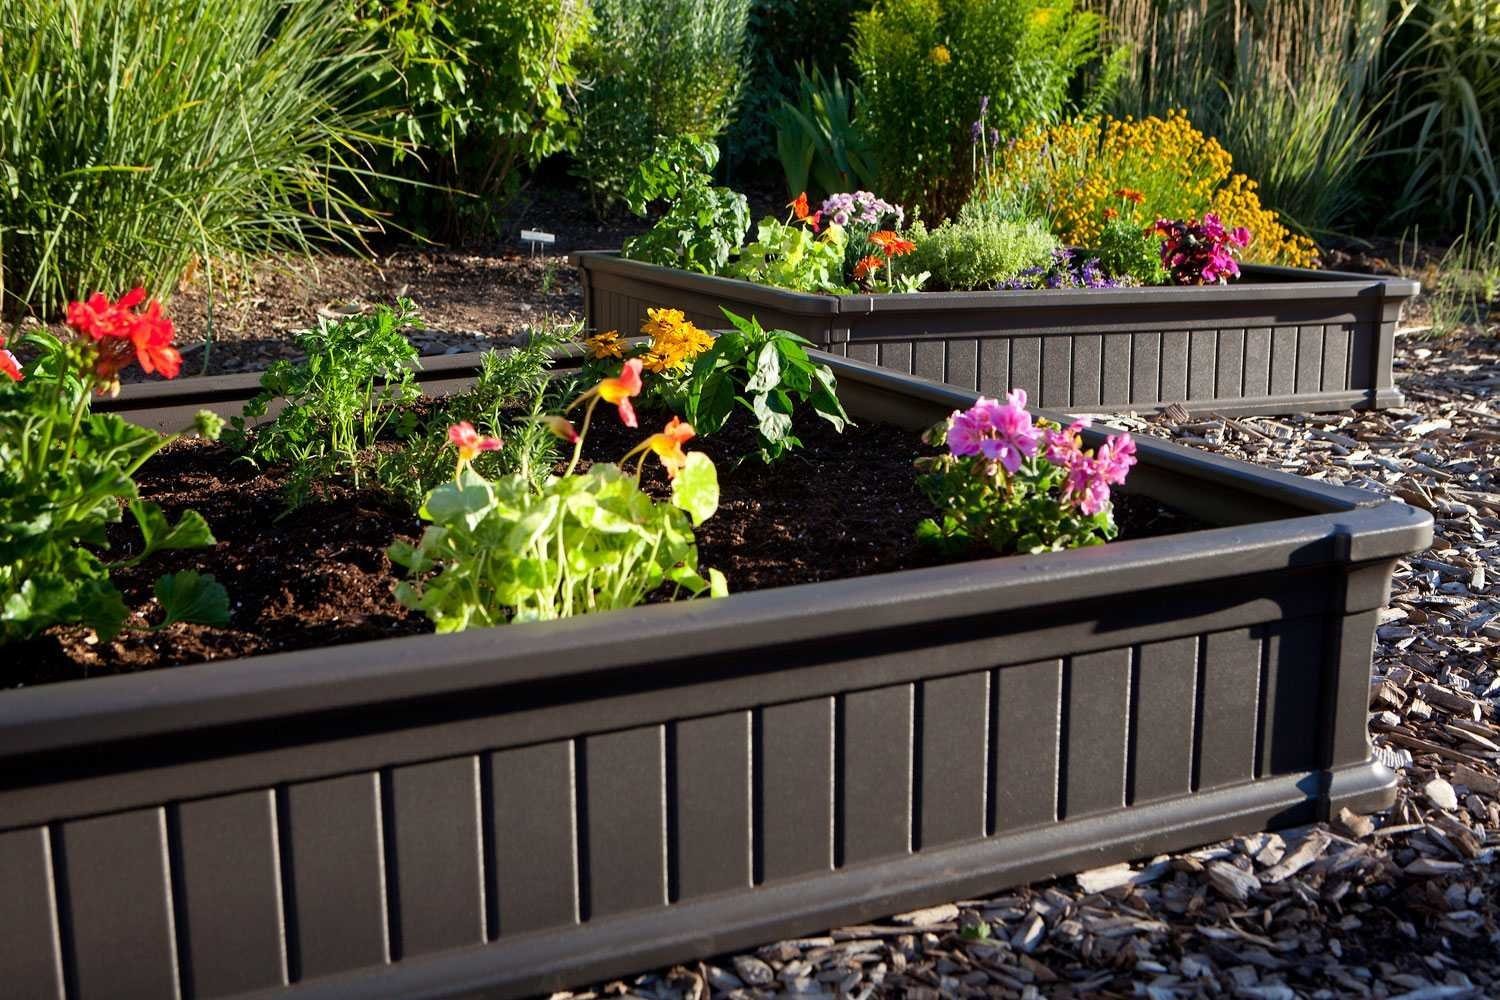 Backyard Raised Garden Ideas :  raisedgardenbedflowerjpg Makea raised  garden  bed